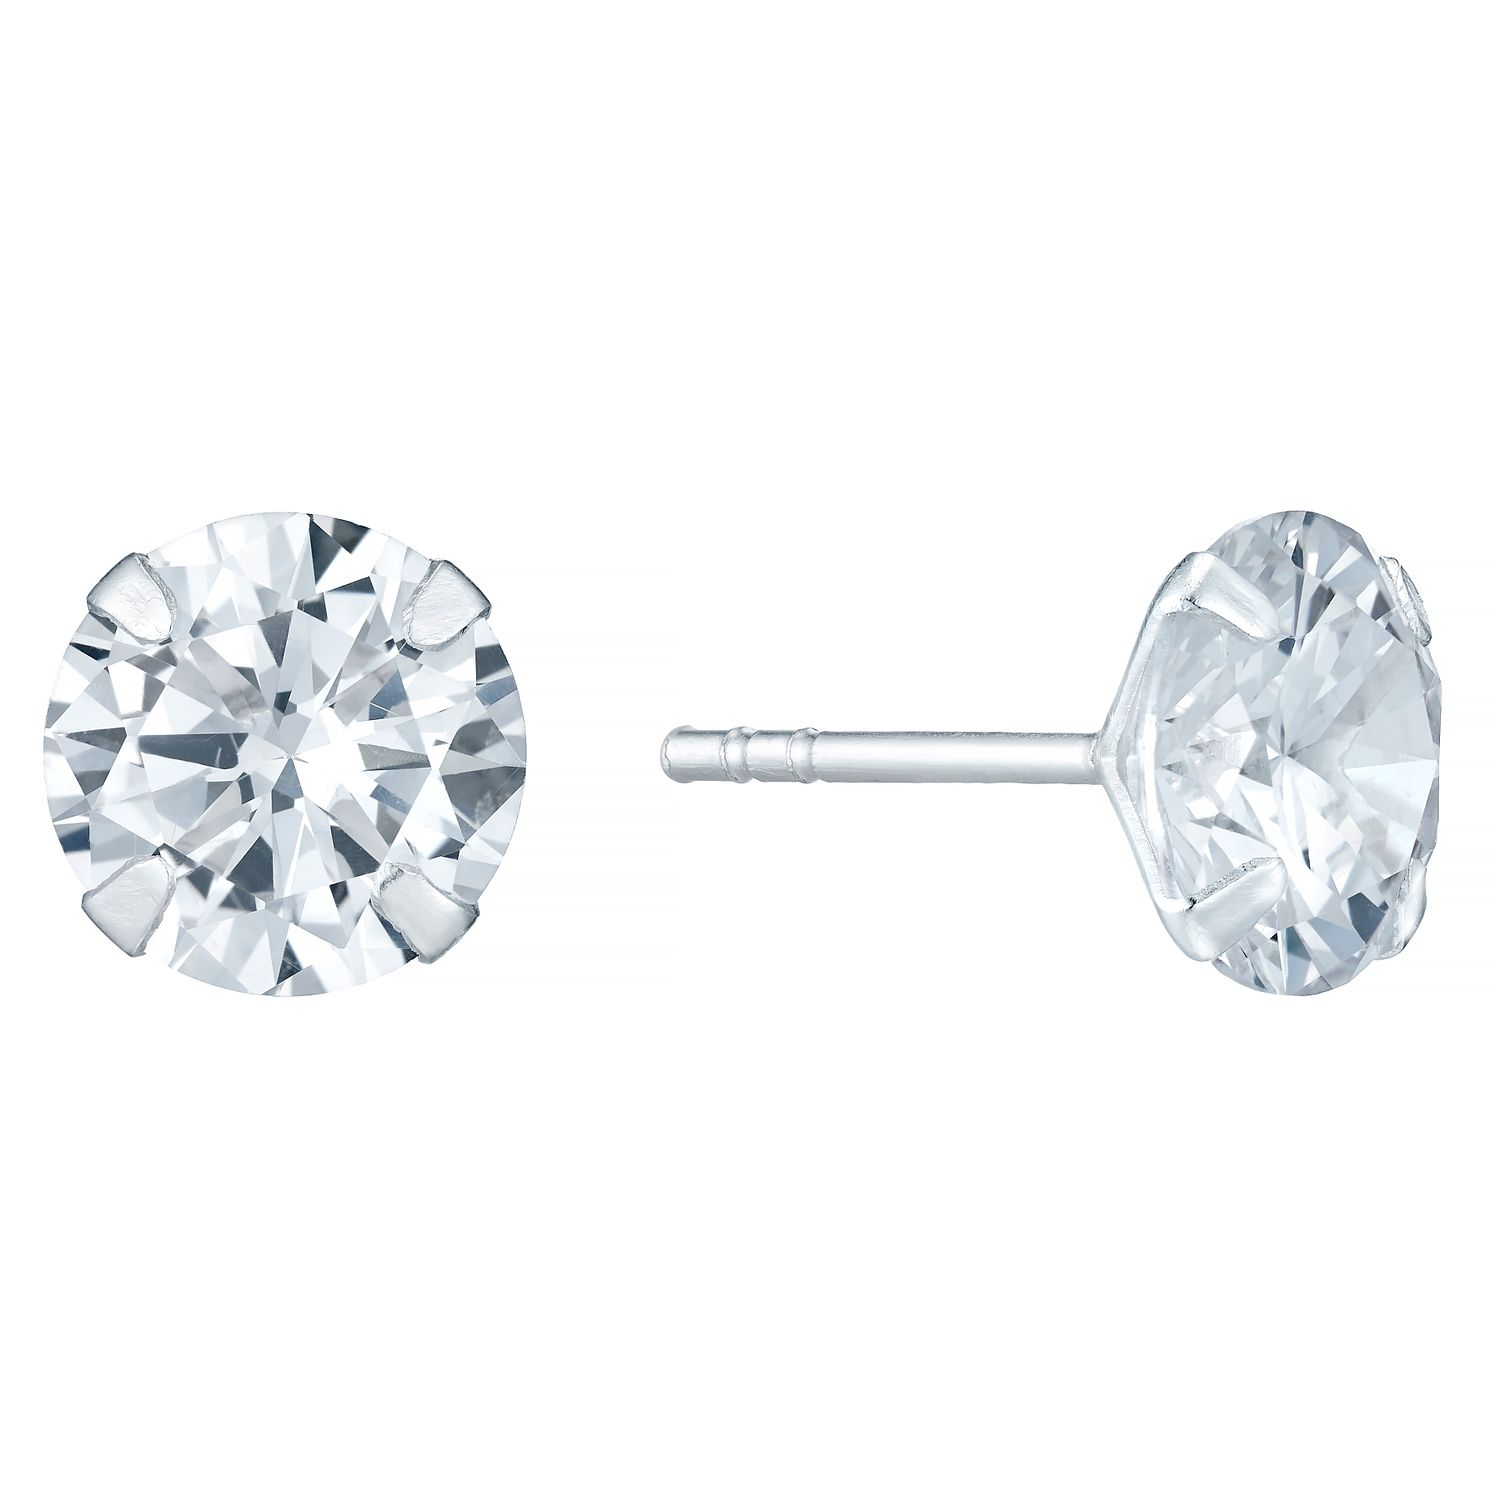 Sterling Silver Cubic Zirconia 8mm Stud Earrings - Product number 4402901